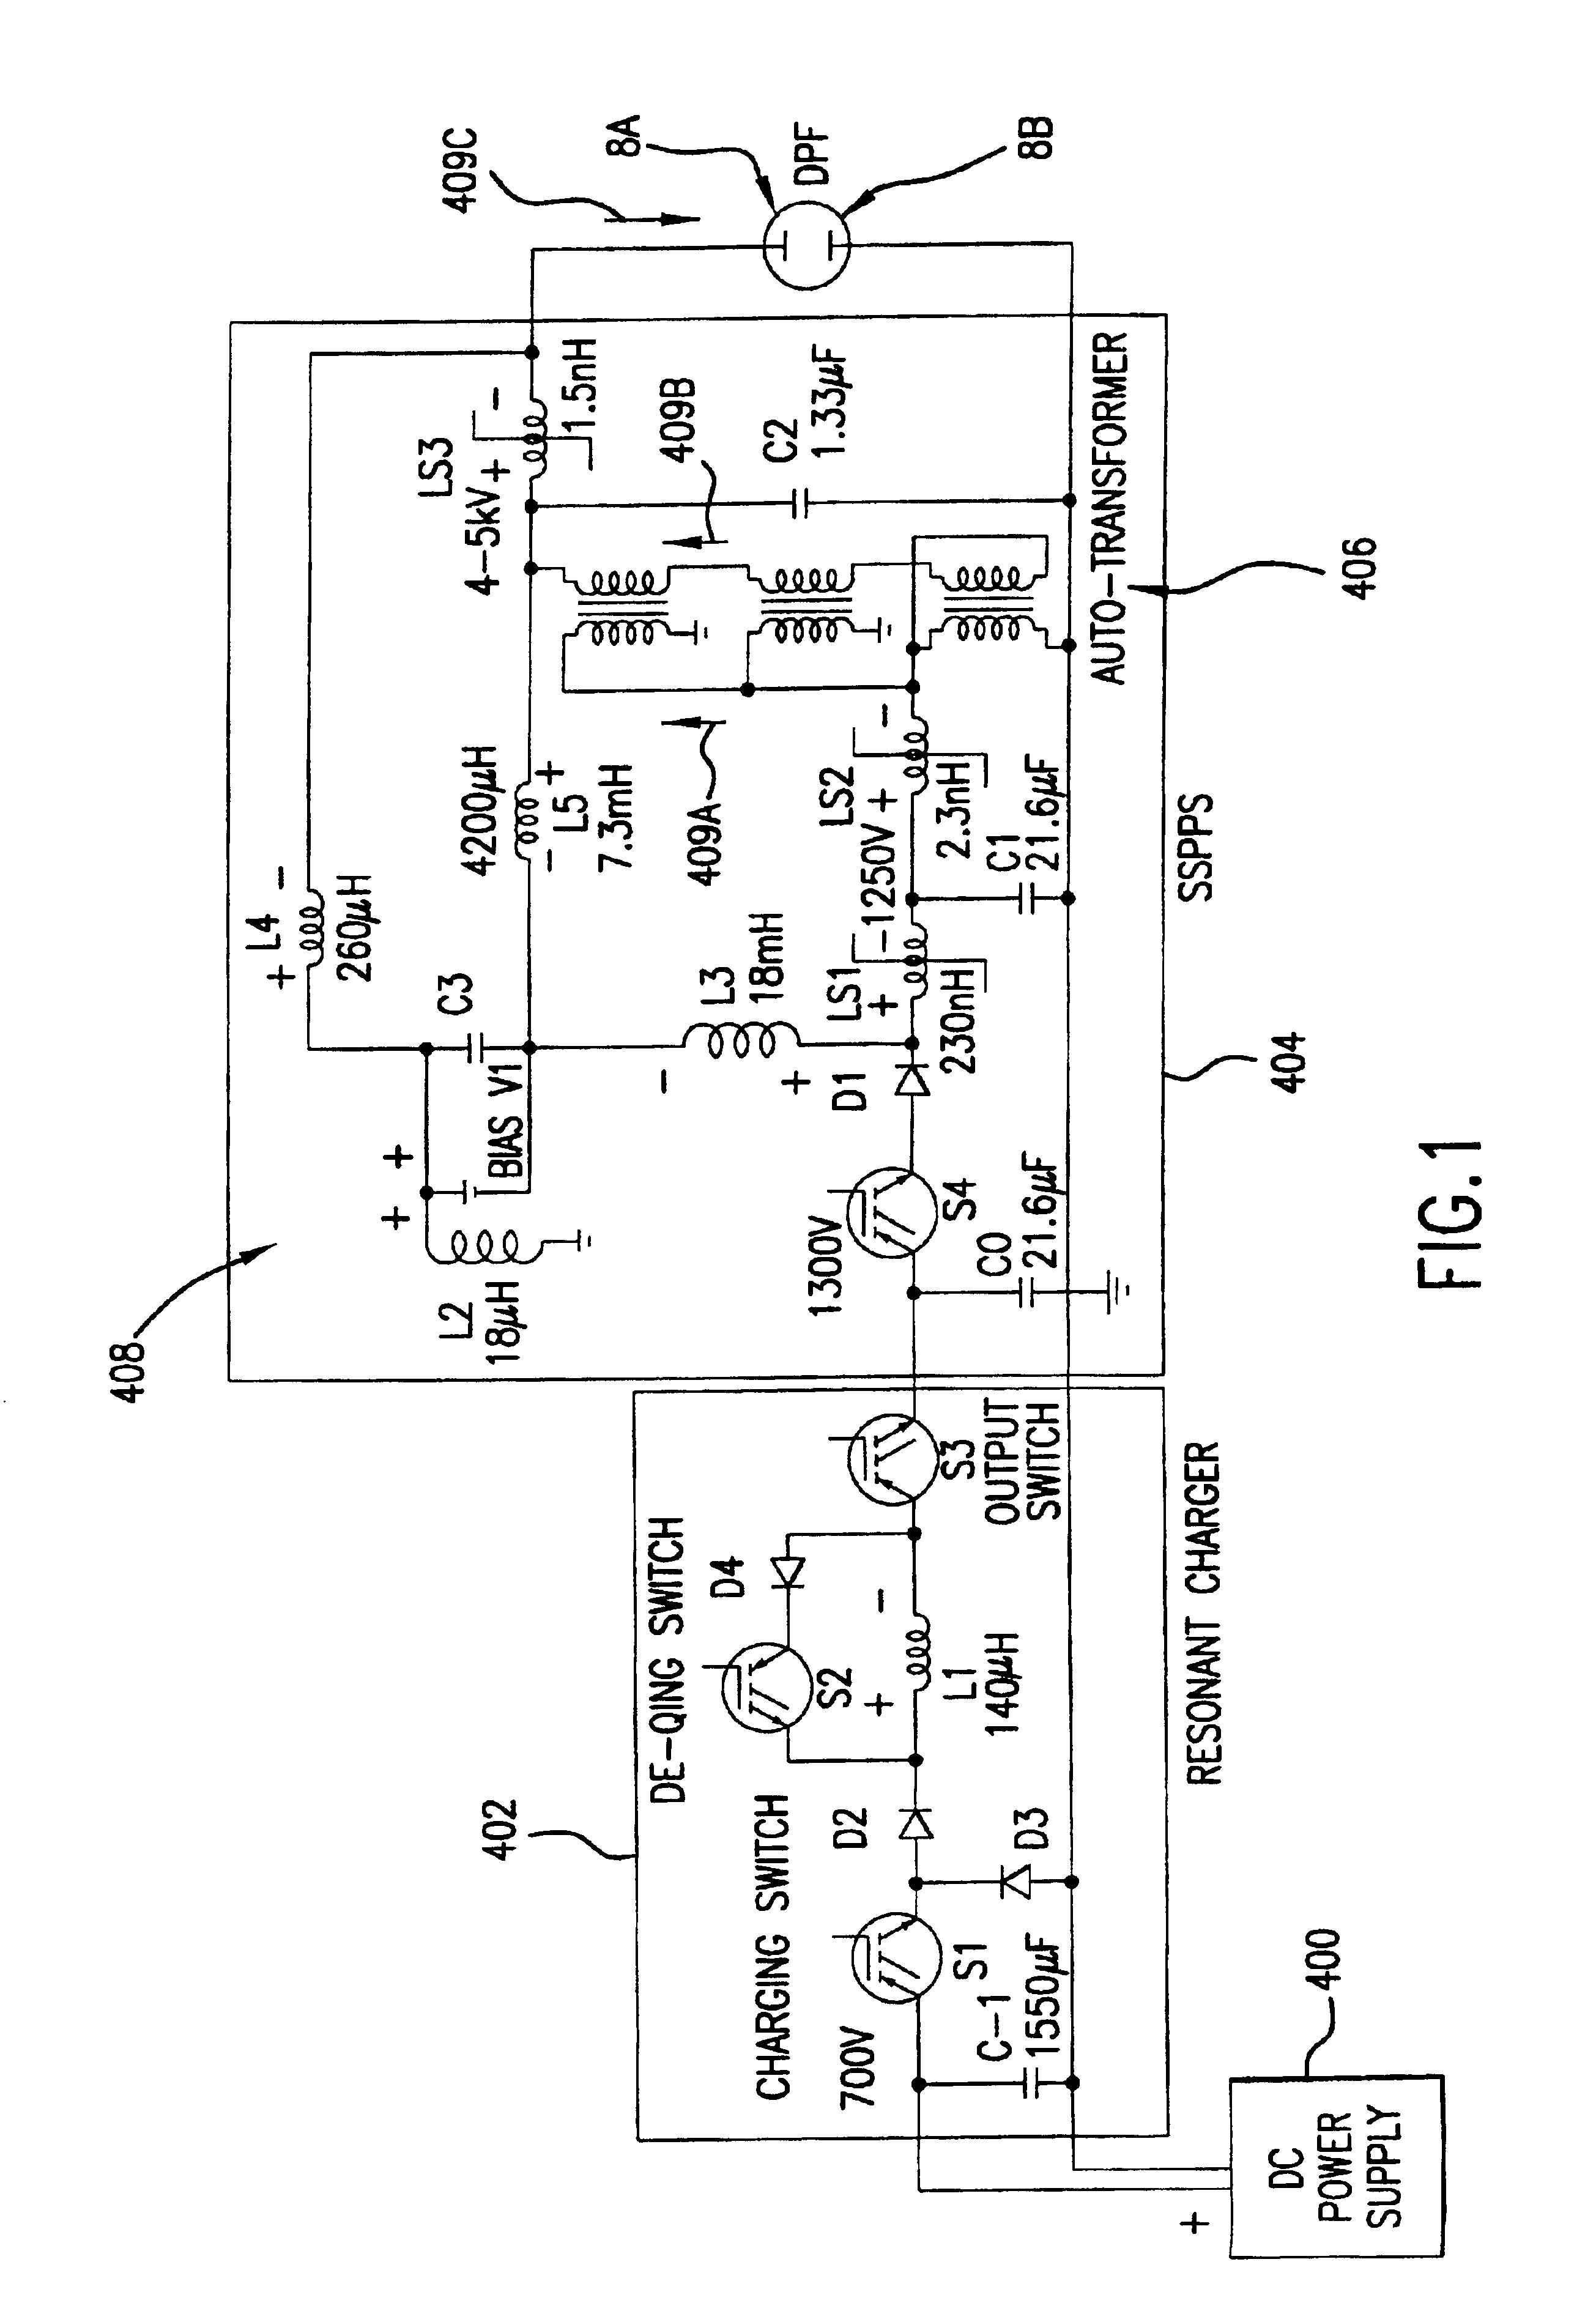 patent us6744060 - pulse power system for extreme ultraviolet and x-ray sources